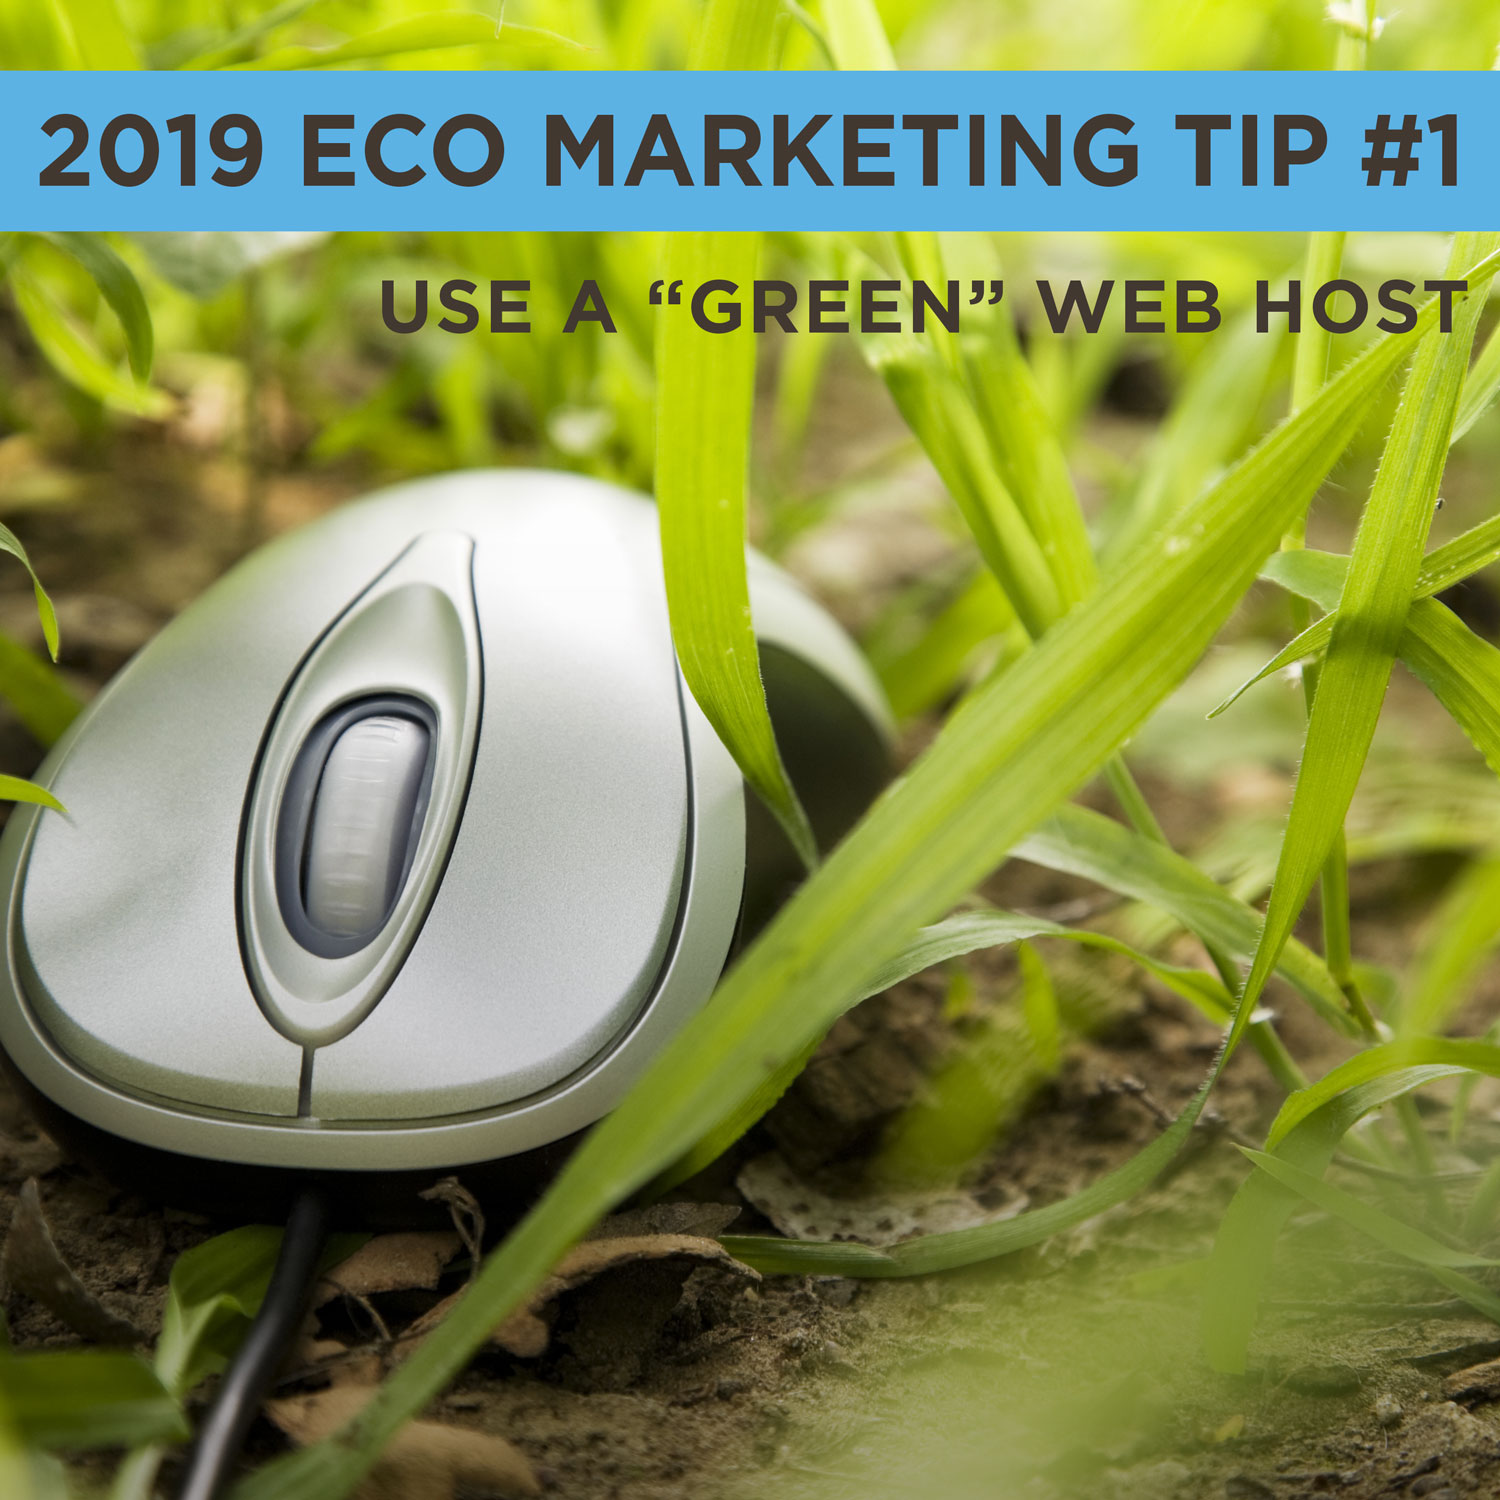 Eco Marketing Tip 1 is to use a green web host